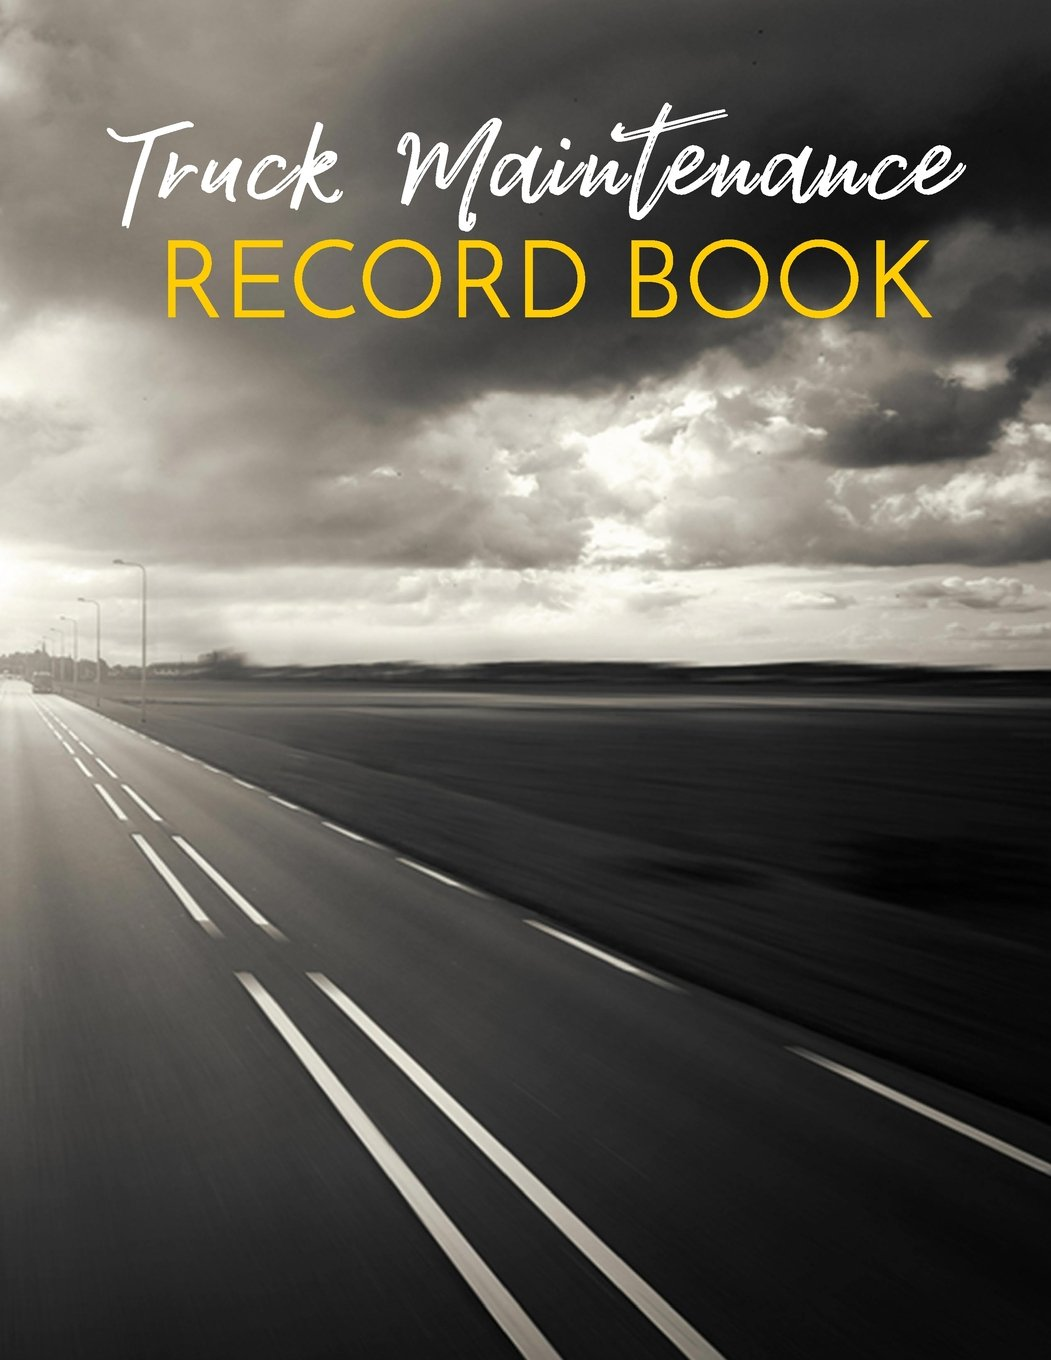 Truck Maintenance Record Book: Truck Repair Log Book Journal (Date, Type of Repairs, Maintenance & Mileage)(8.5 x 11) V2